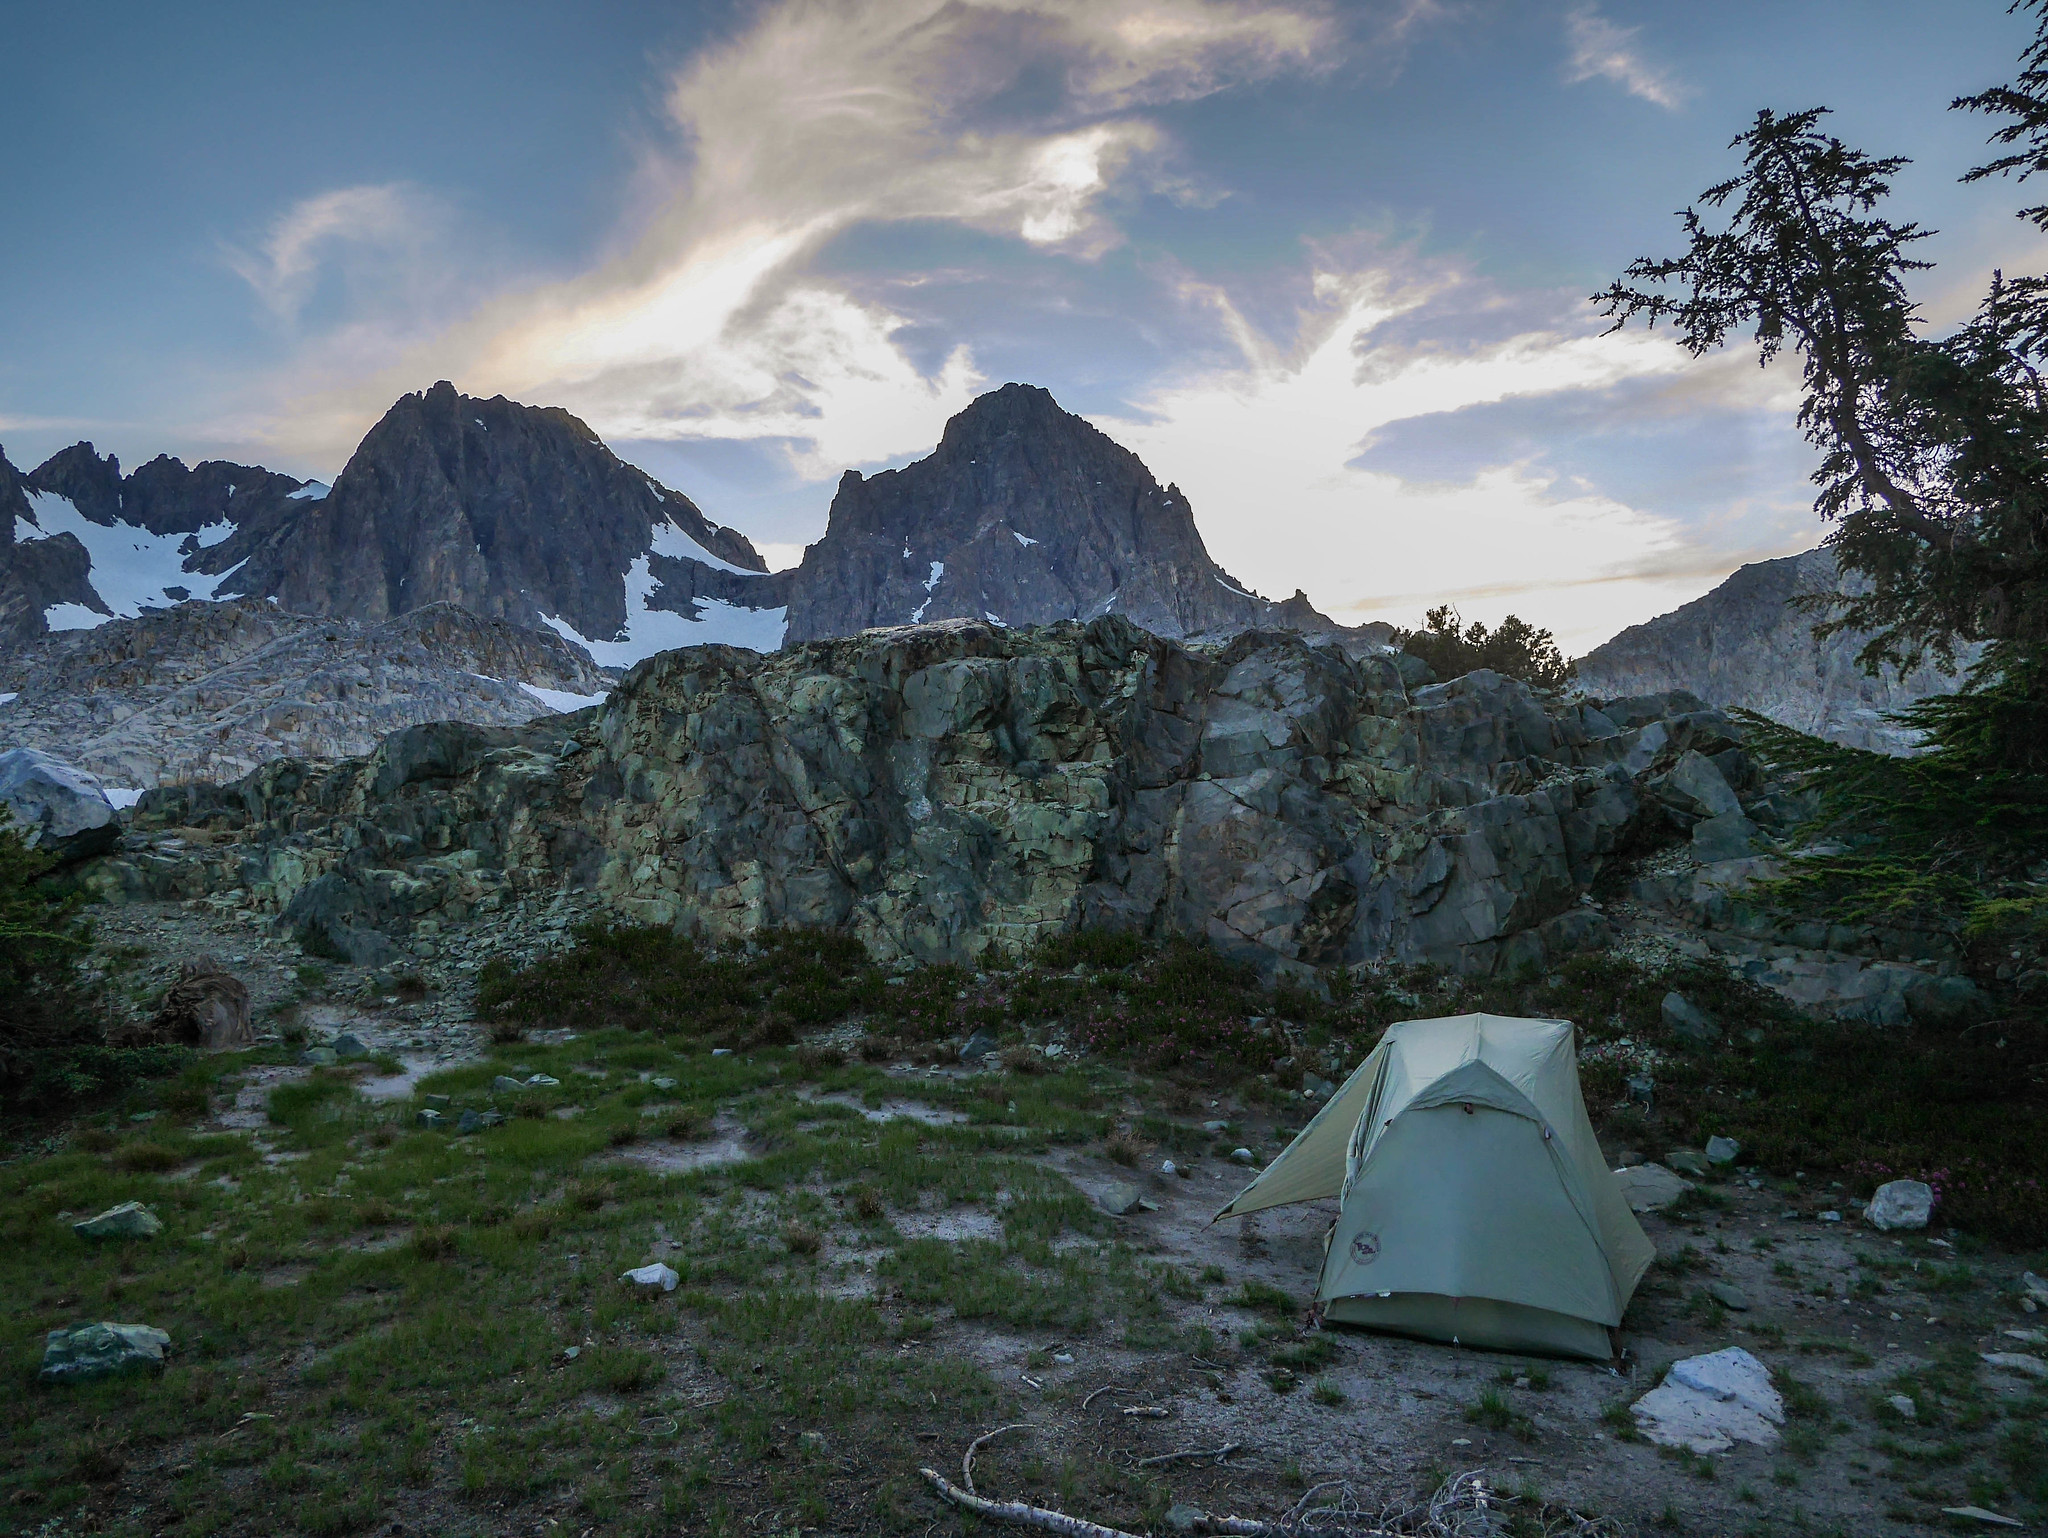 Camp above lower Nydiver